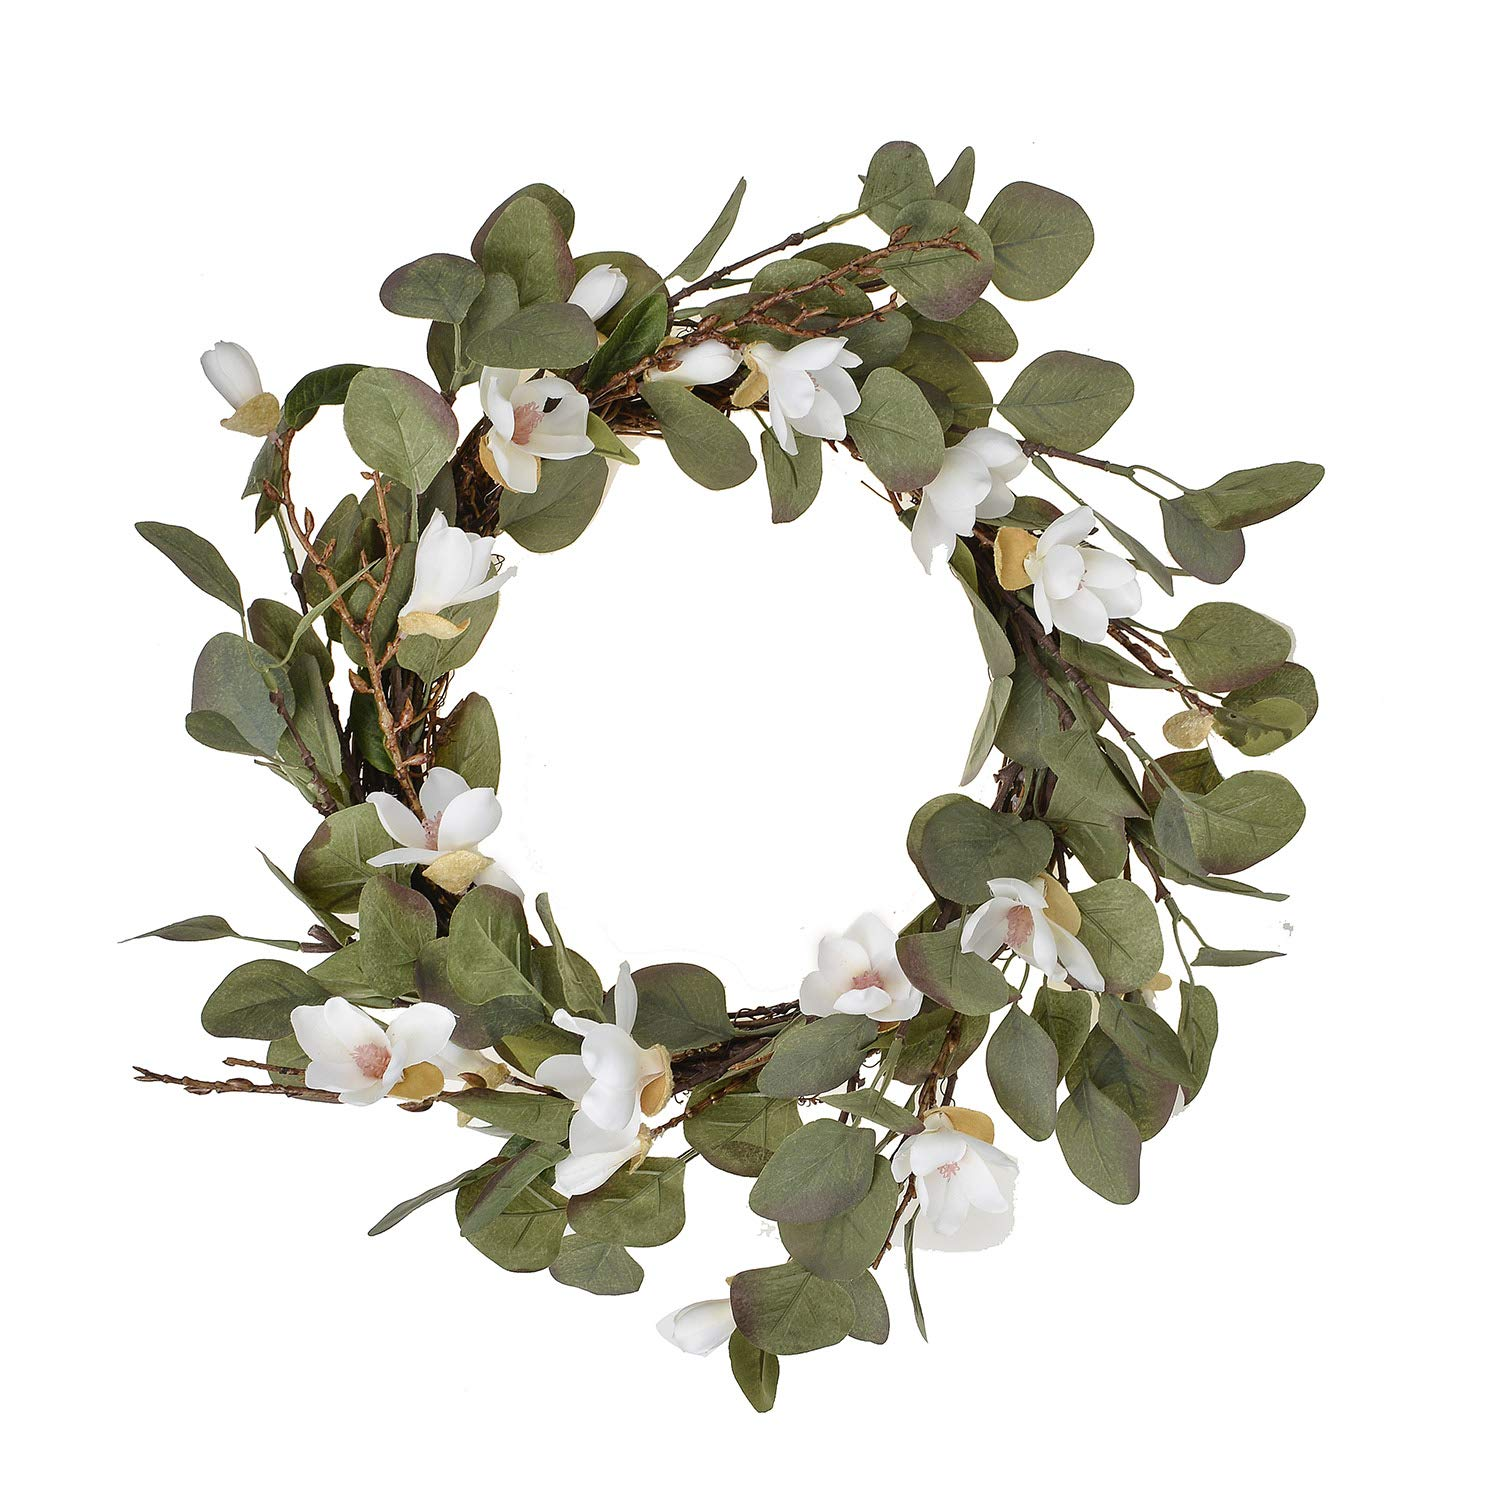 FAVOWREATH Fall Series FAVO-W122 Handmade 15 inch White Lily,Hello Letter,Laurel/Eucalyptus Leaf,Grapevine Wreath for Festival Front Door/Wall/Fireplace Every Day Nearly Natural Home Hanger Decor by FAVOWREATH